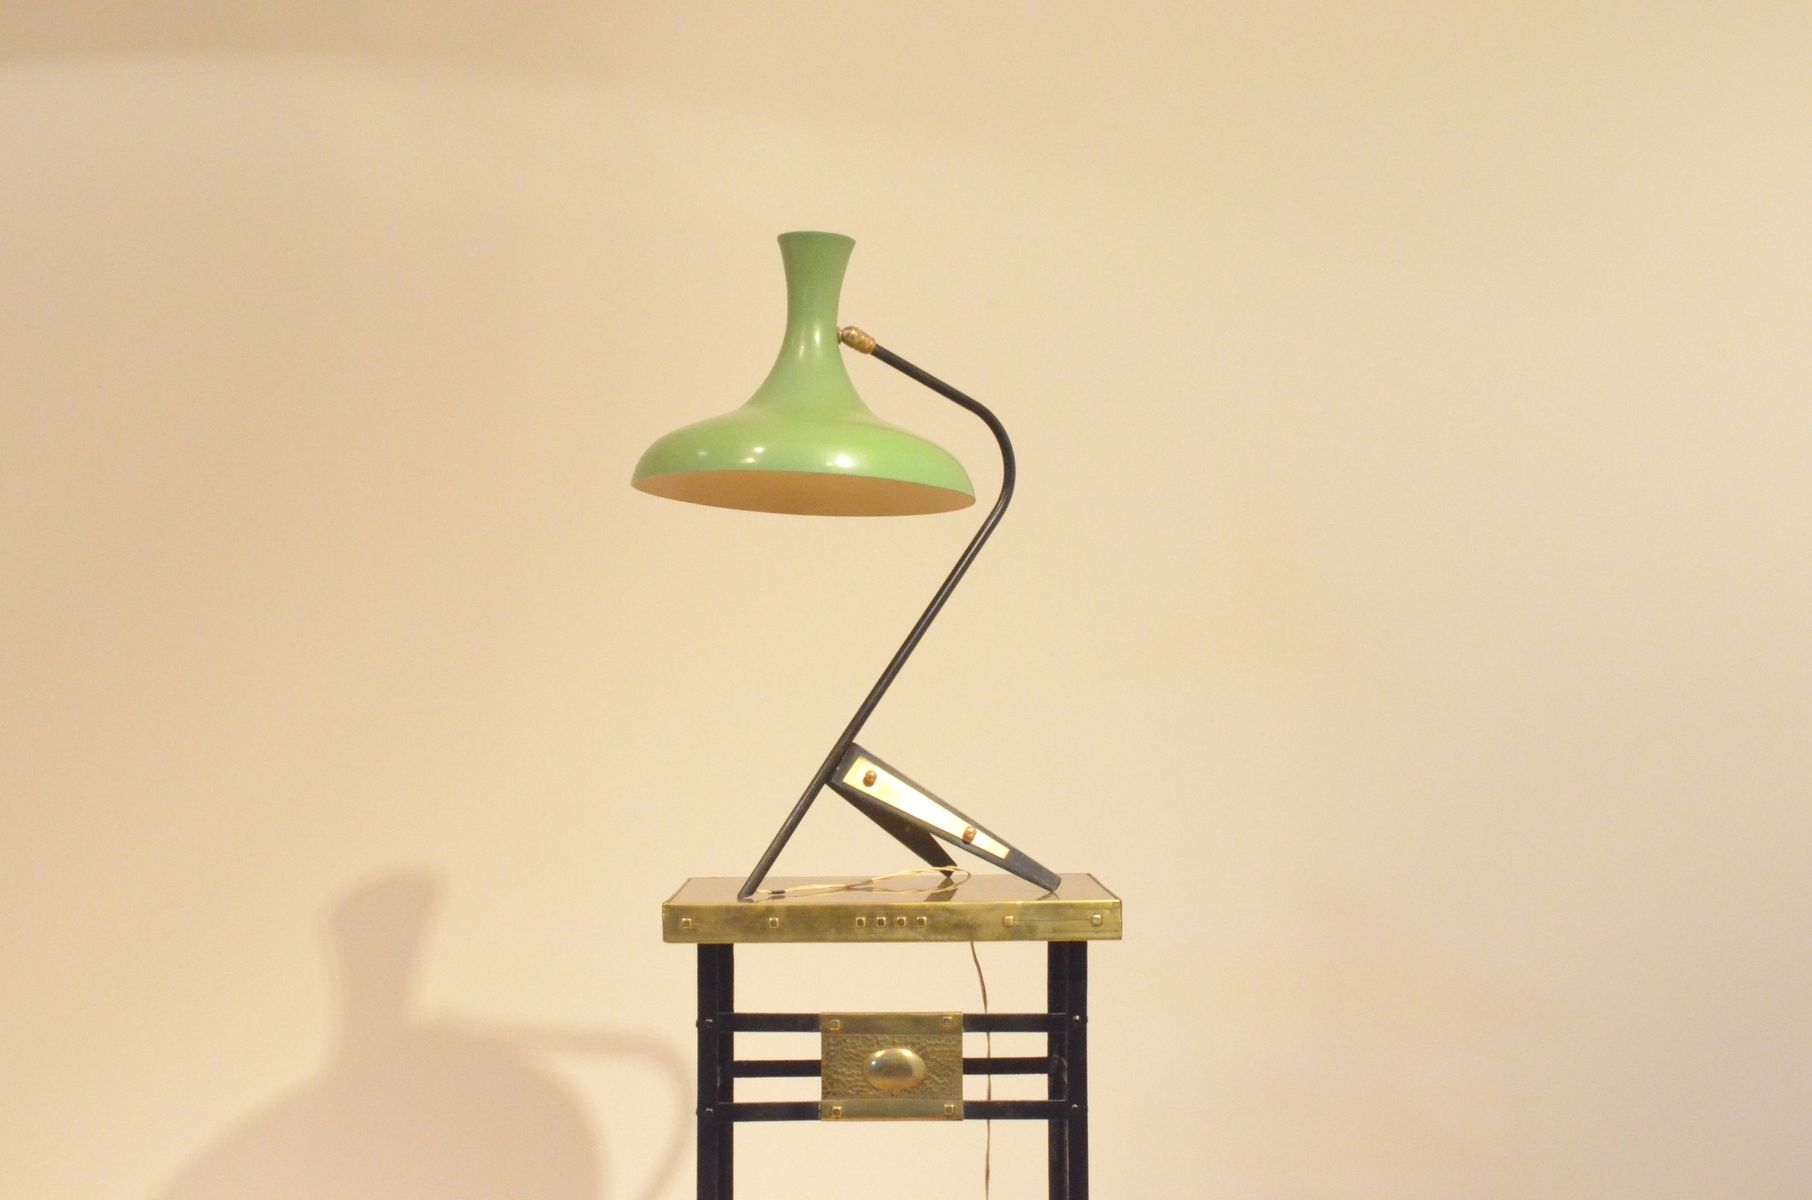 midcentury french extra large tripod table lamp from maison lunel 1950s